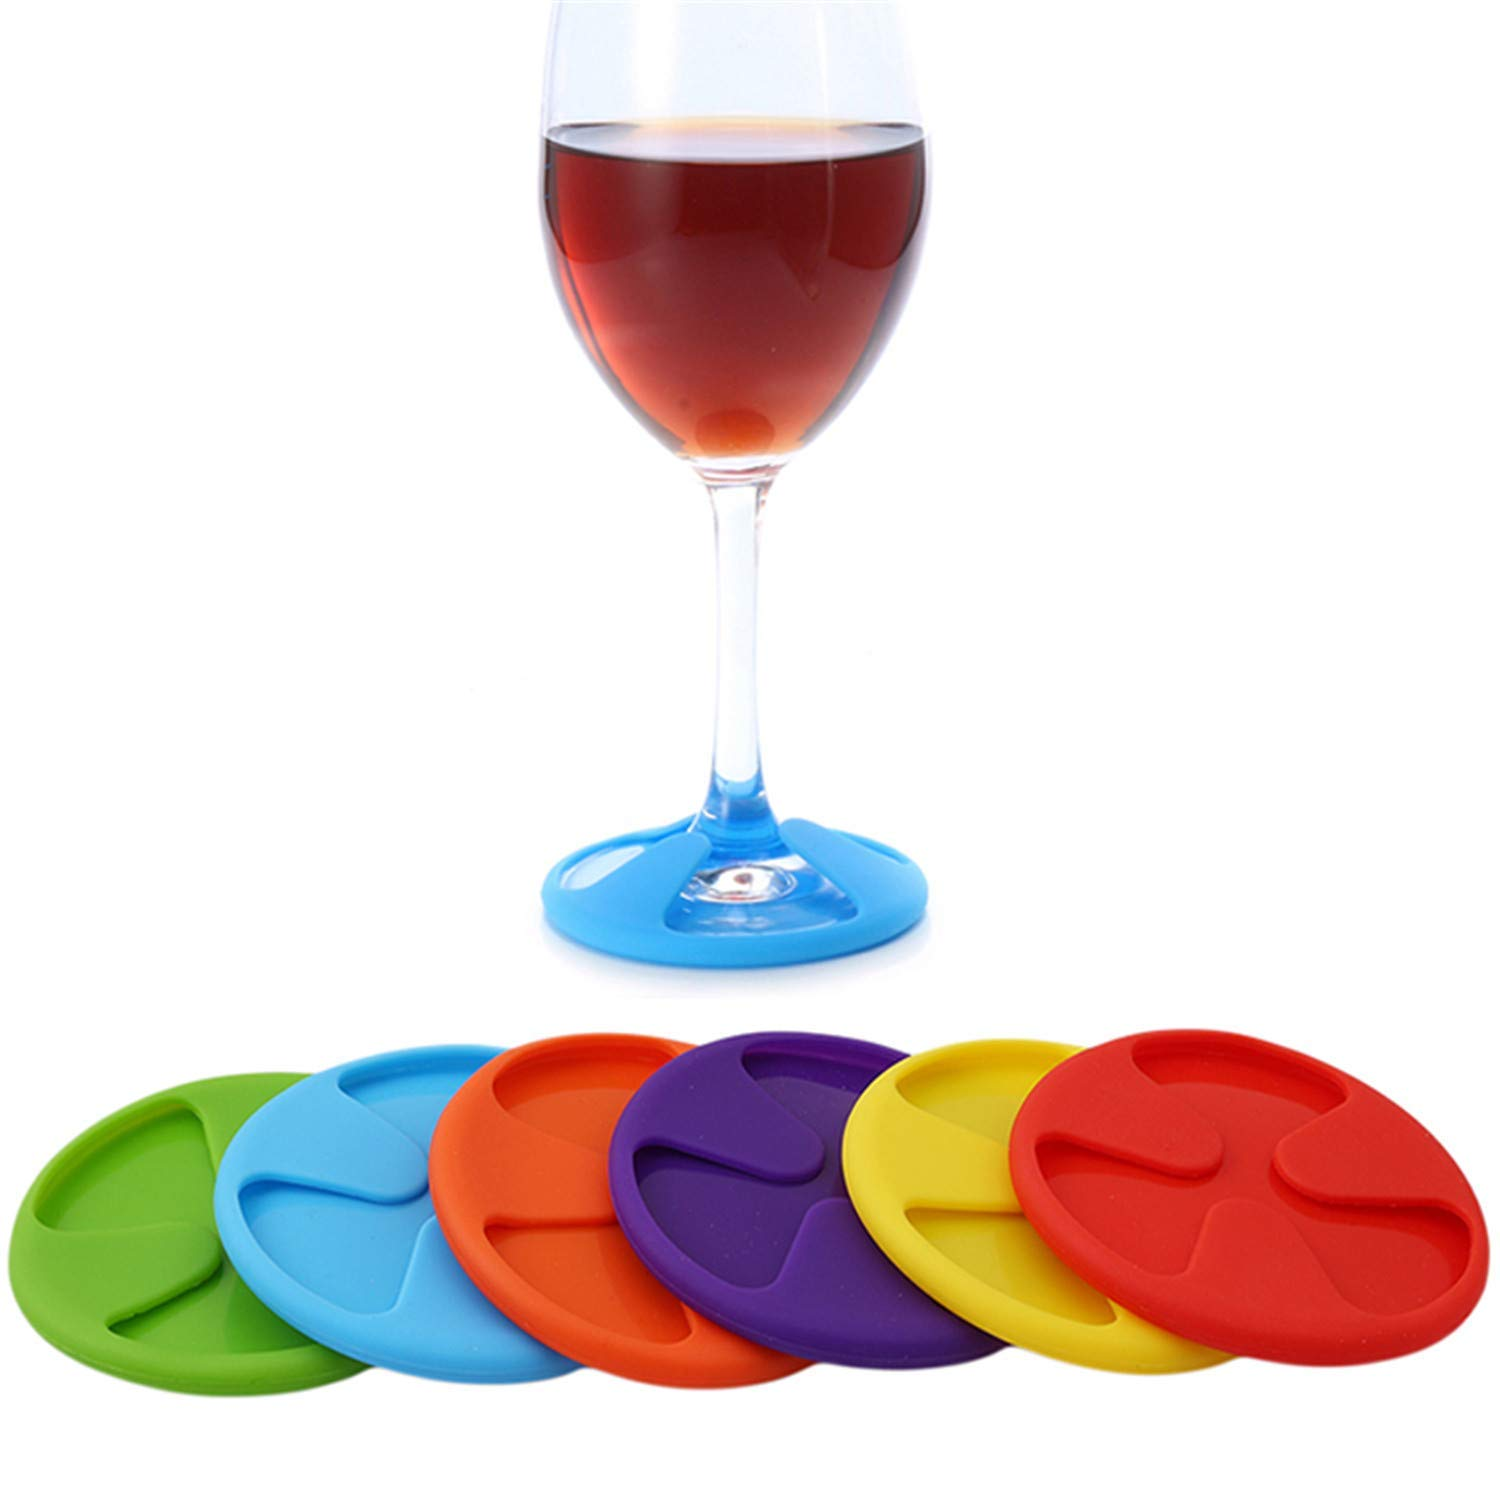 6Pcs/Set Silicone Wine Glass Cup Charm Mat 3 In 1 Wine Glass Charms Stemware Coaster Cup Covers Drinks Marker Table Decoration